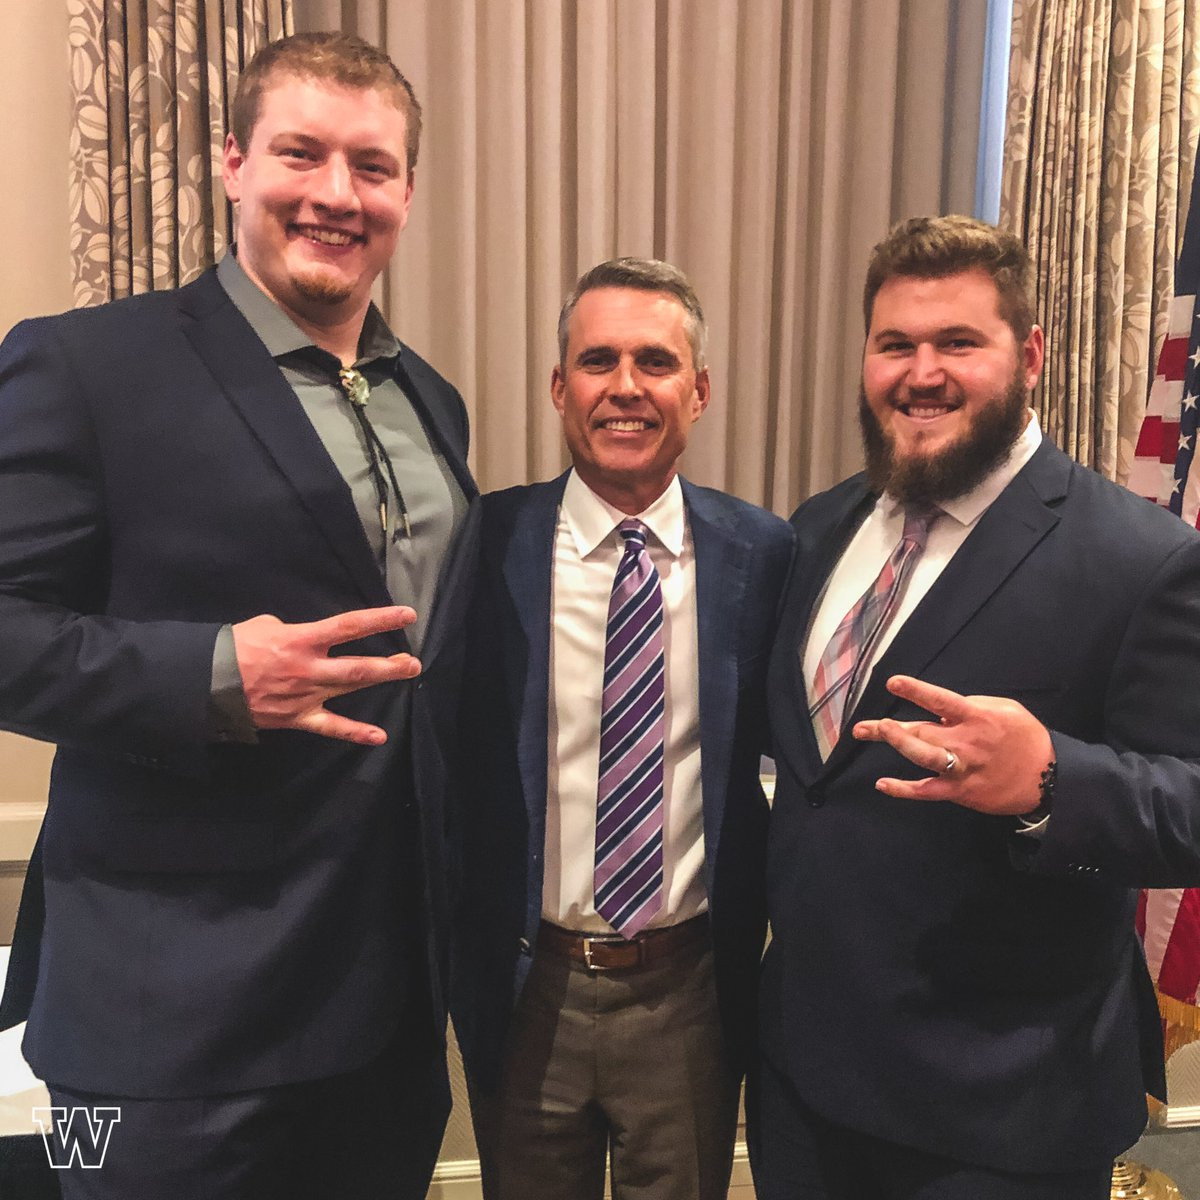 Congrats to Morris Trophy winners Greg Gaines and Kaleb McGary. Truly a special occasion to have two Washington guys win this award. #PurpleReign<br>http://pic.twitter.com/L3IwVqkAV2